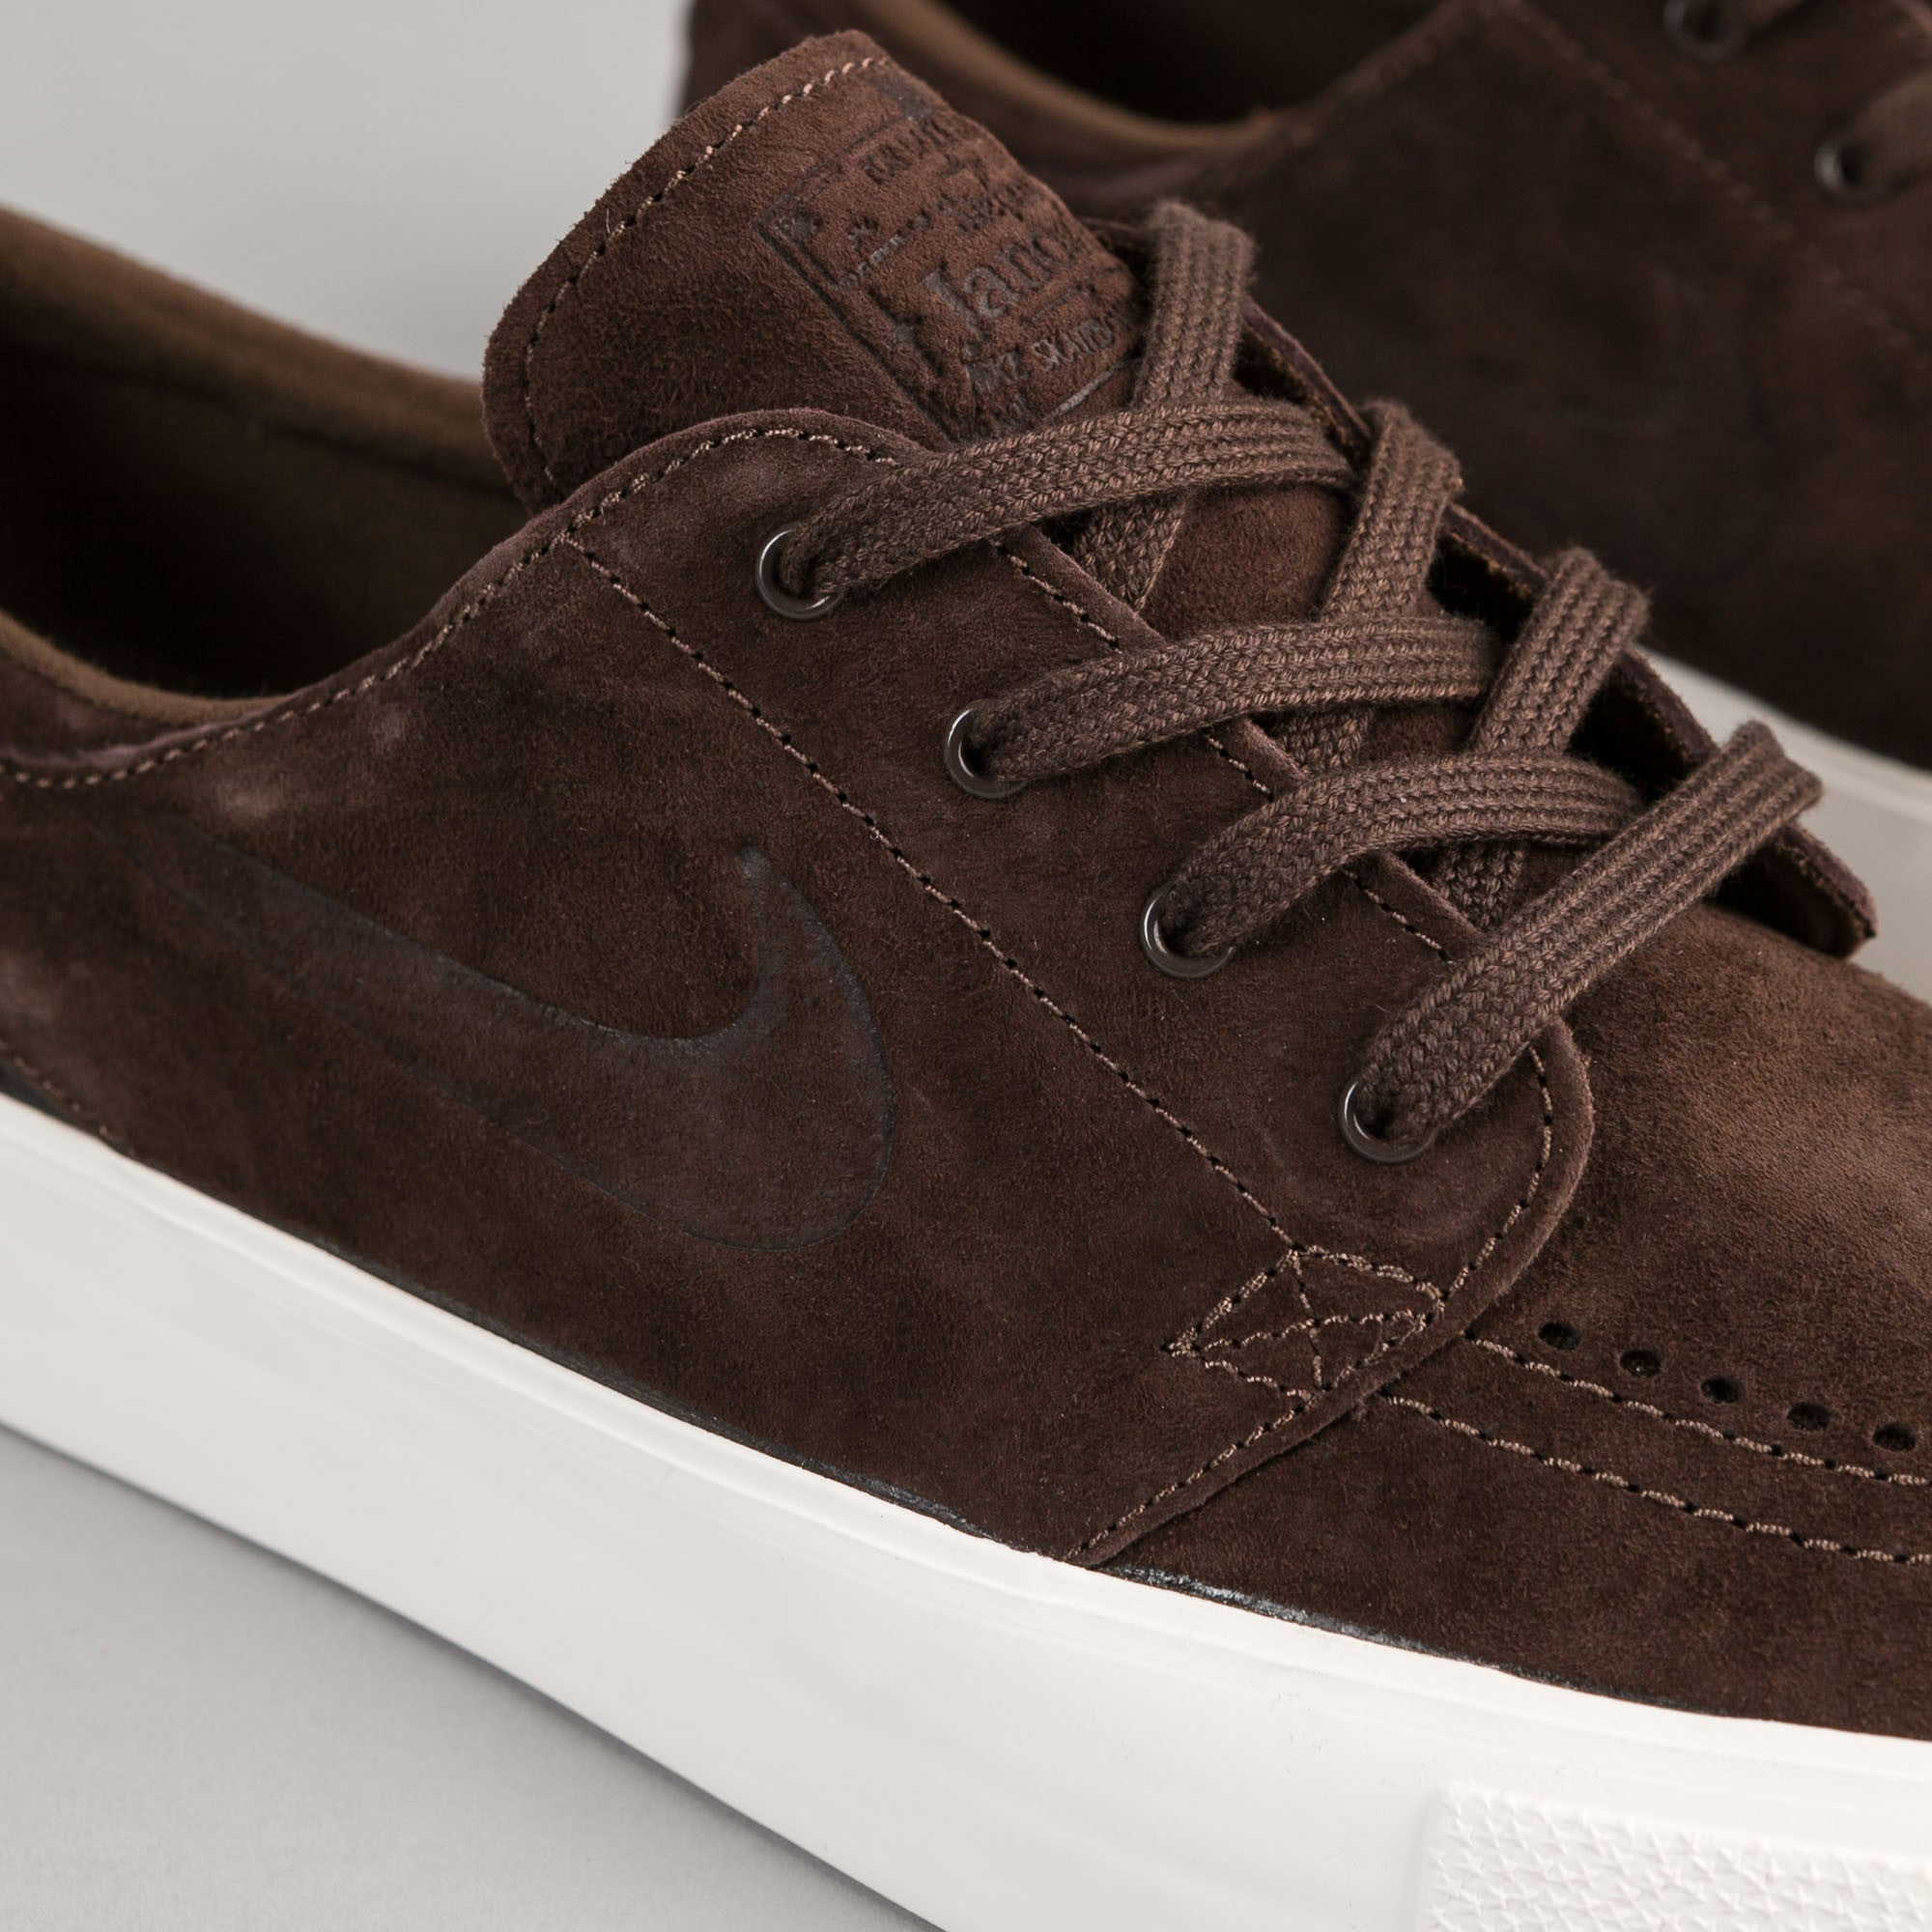 ... Nike SB Stefan Janoski Premium HT Shoes - Baroque Brown   Baroque Brown  - Ivory ... 6822d9a37b45